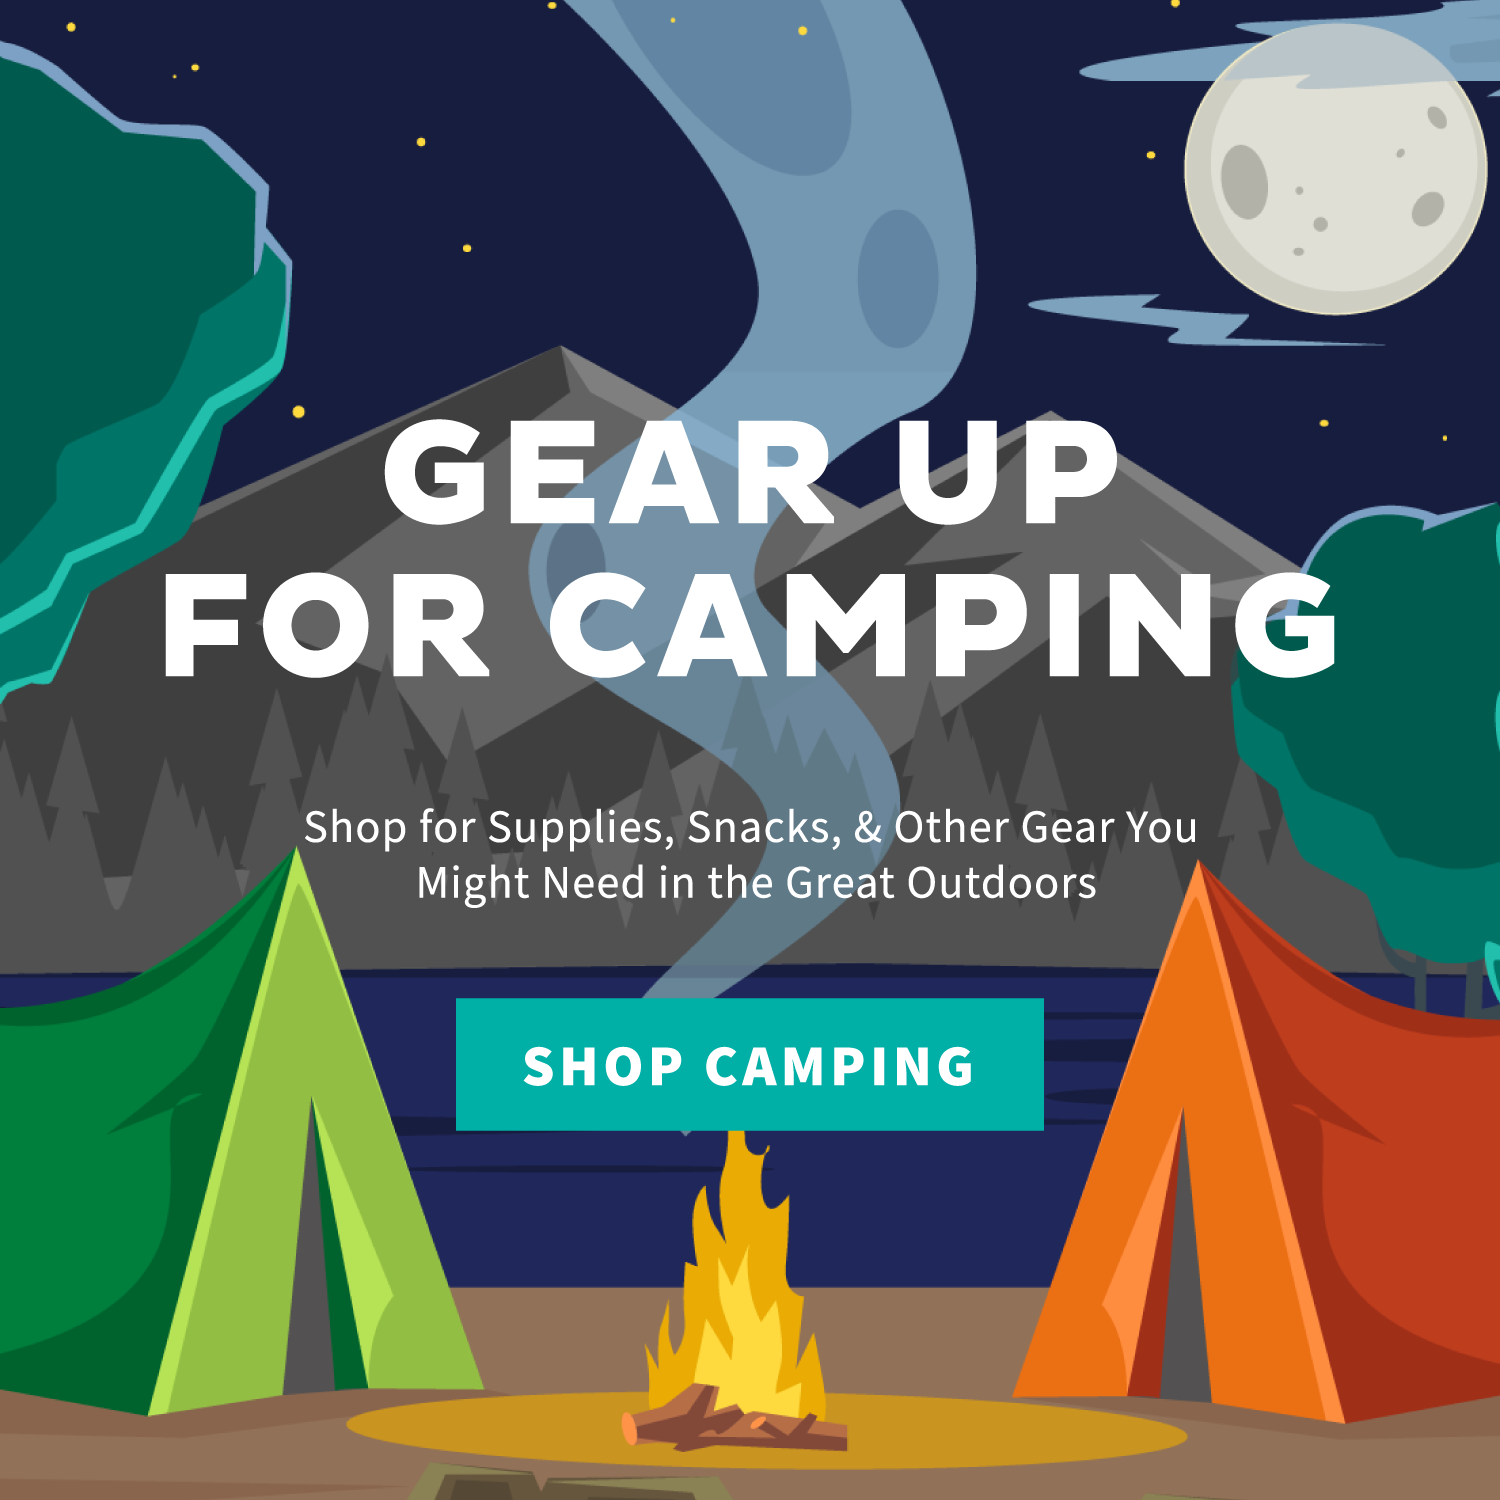 Gear Up for Camping